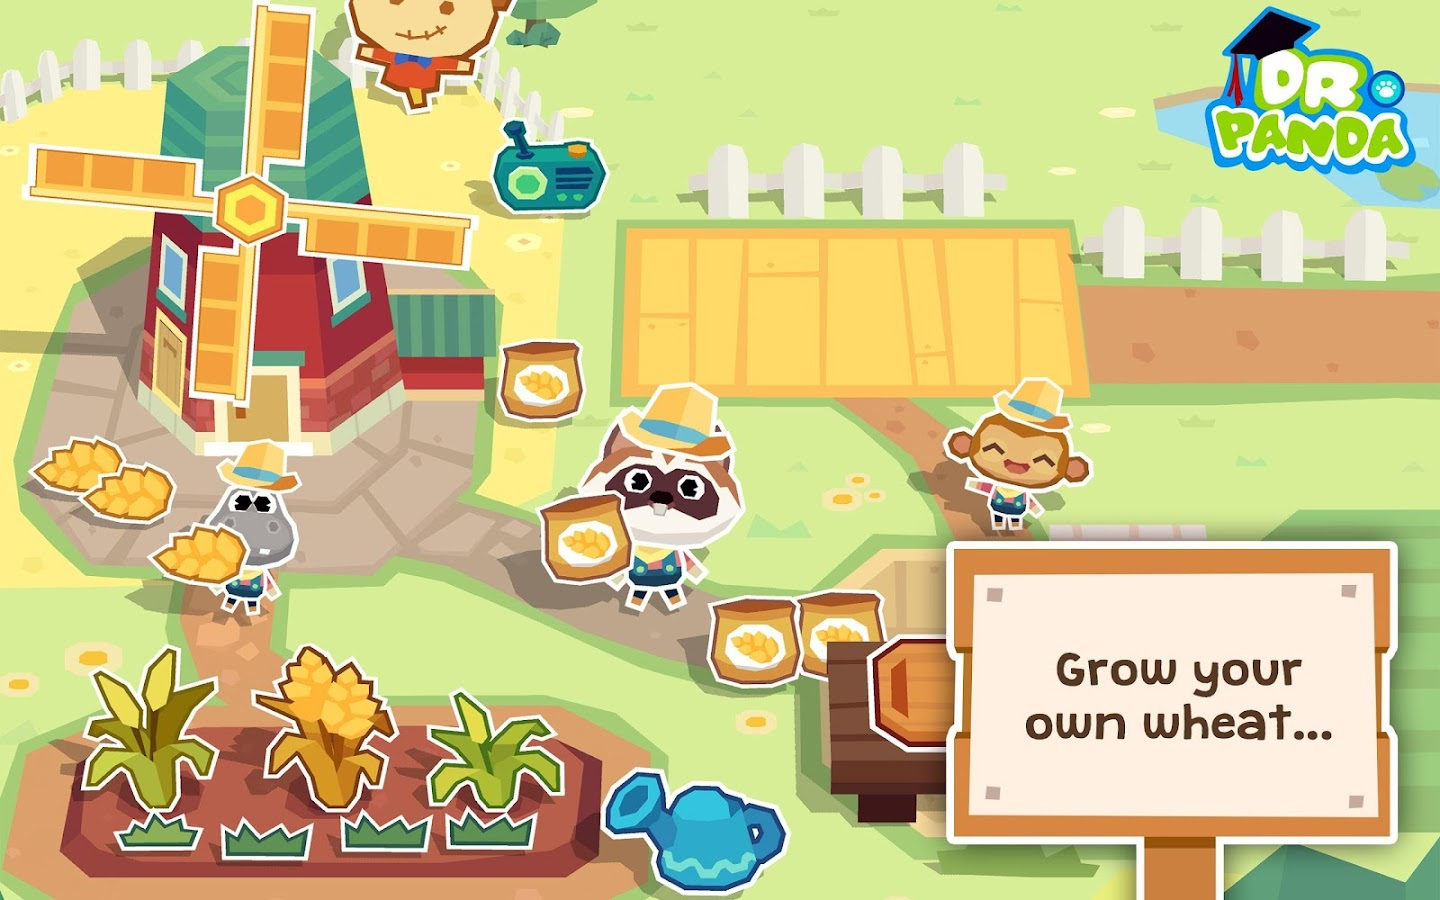 Dr. Panda Farm Screenshot 2